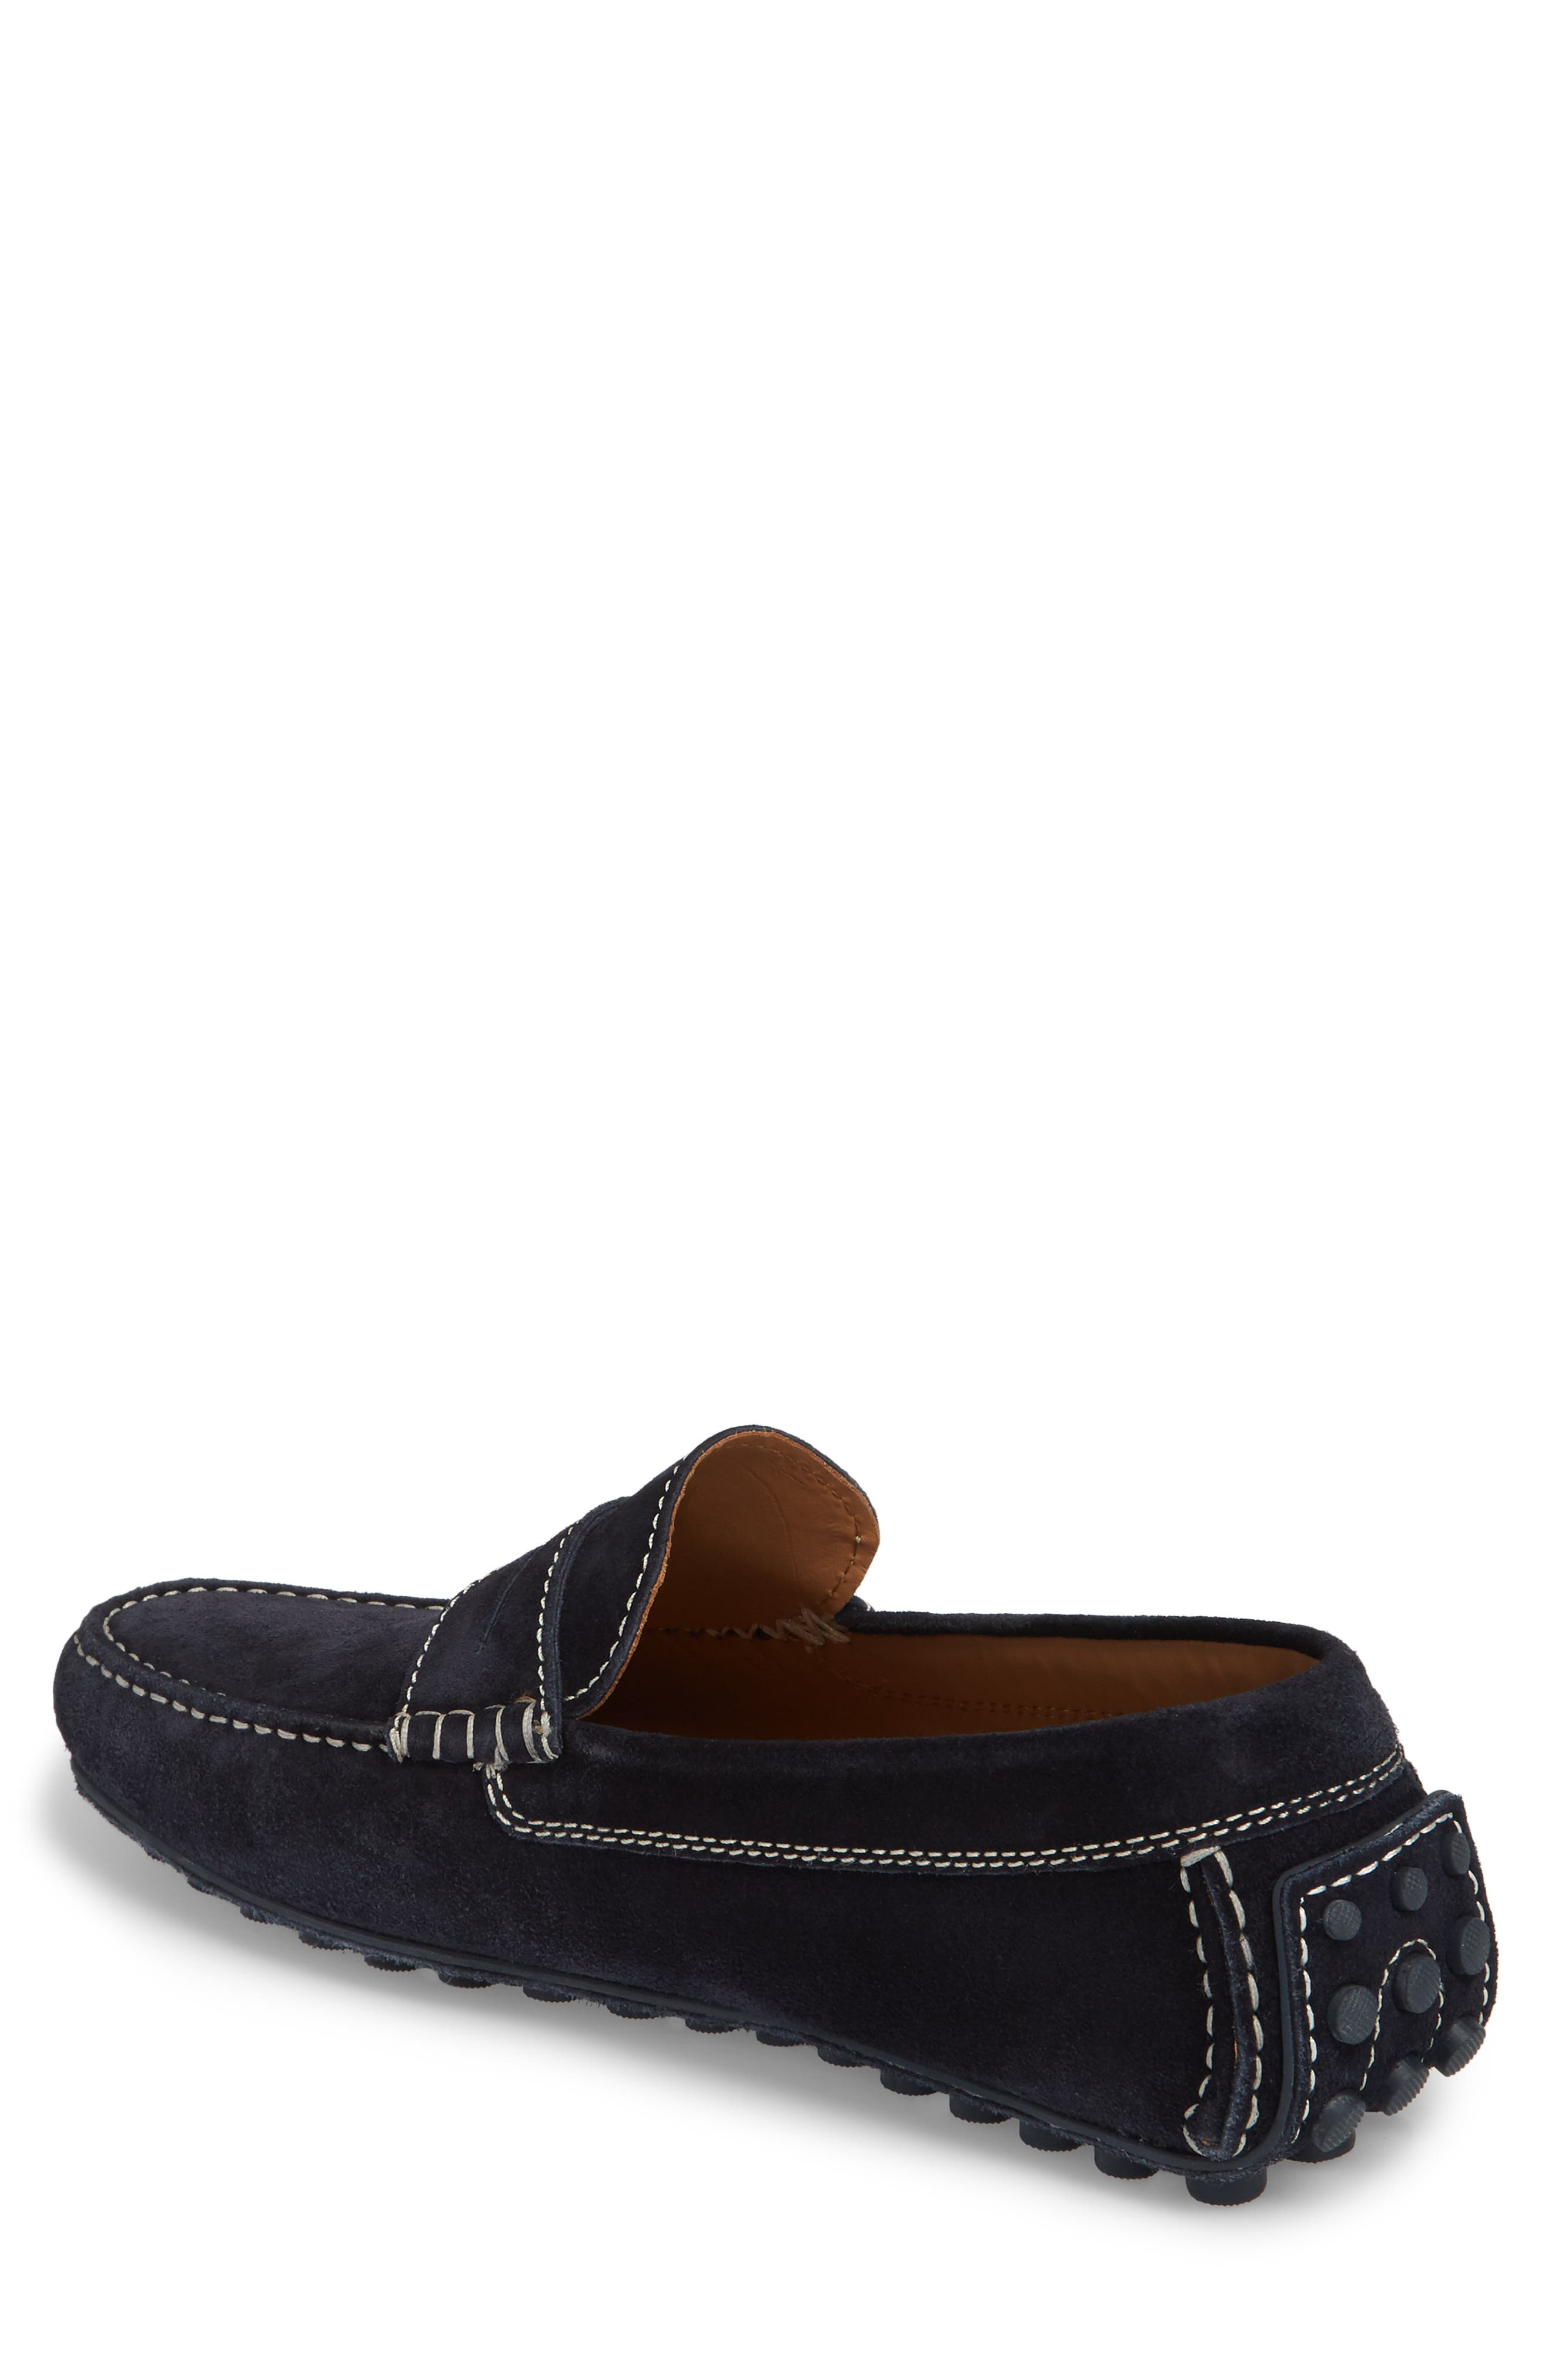 Penny Loafer,                             Alternate thumbnail 2, color,                             Navy